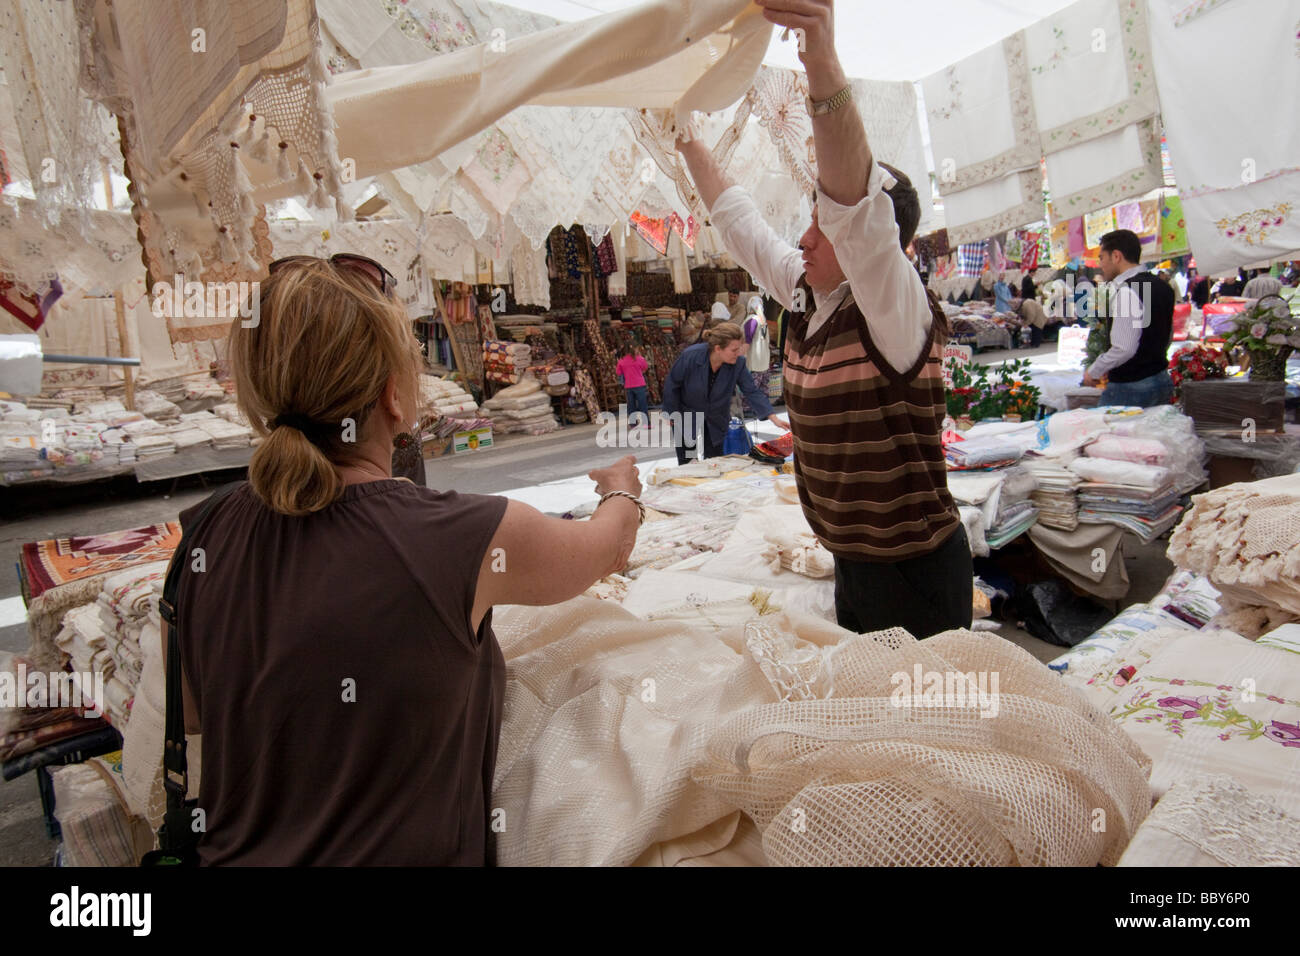 Woman bargaining for a tablecloth in a marketplace in western Turkey - Stock Image